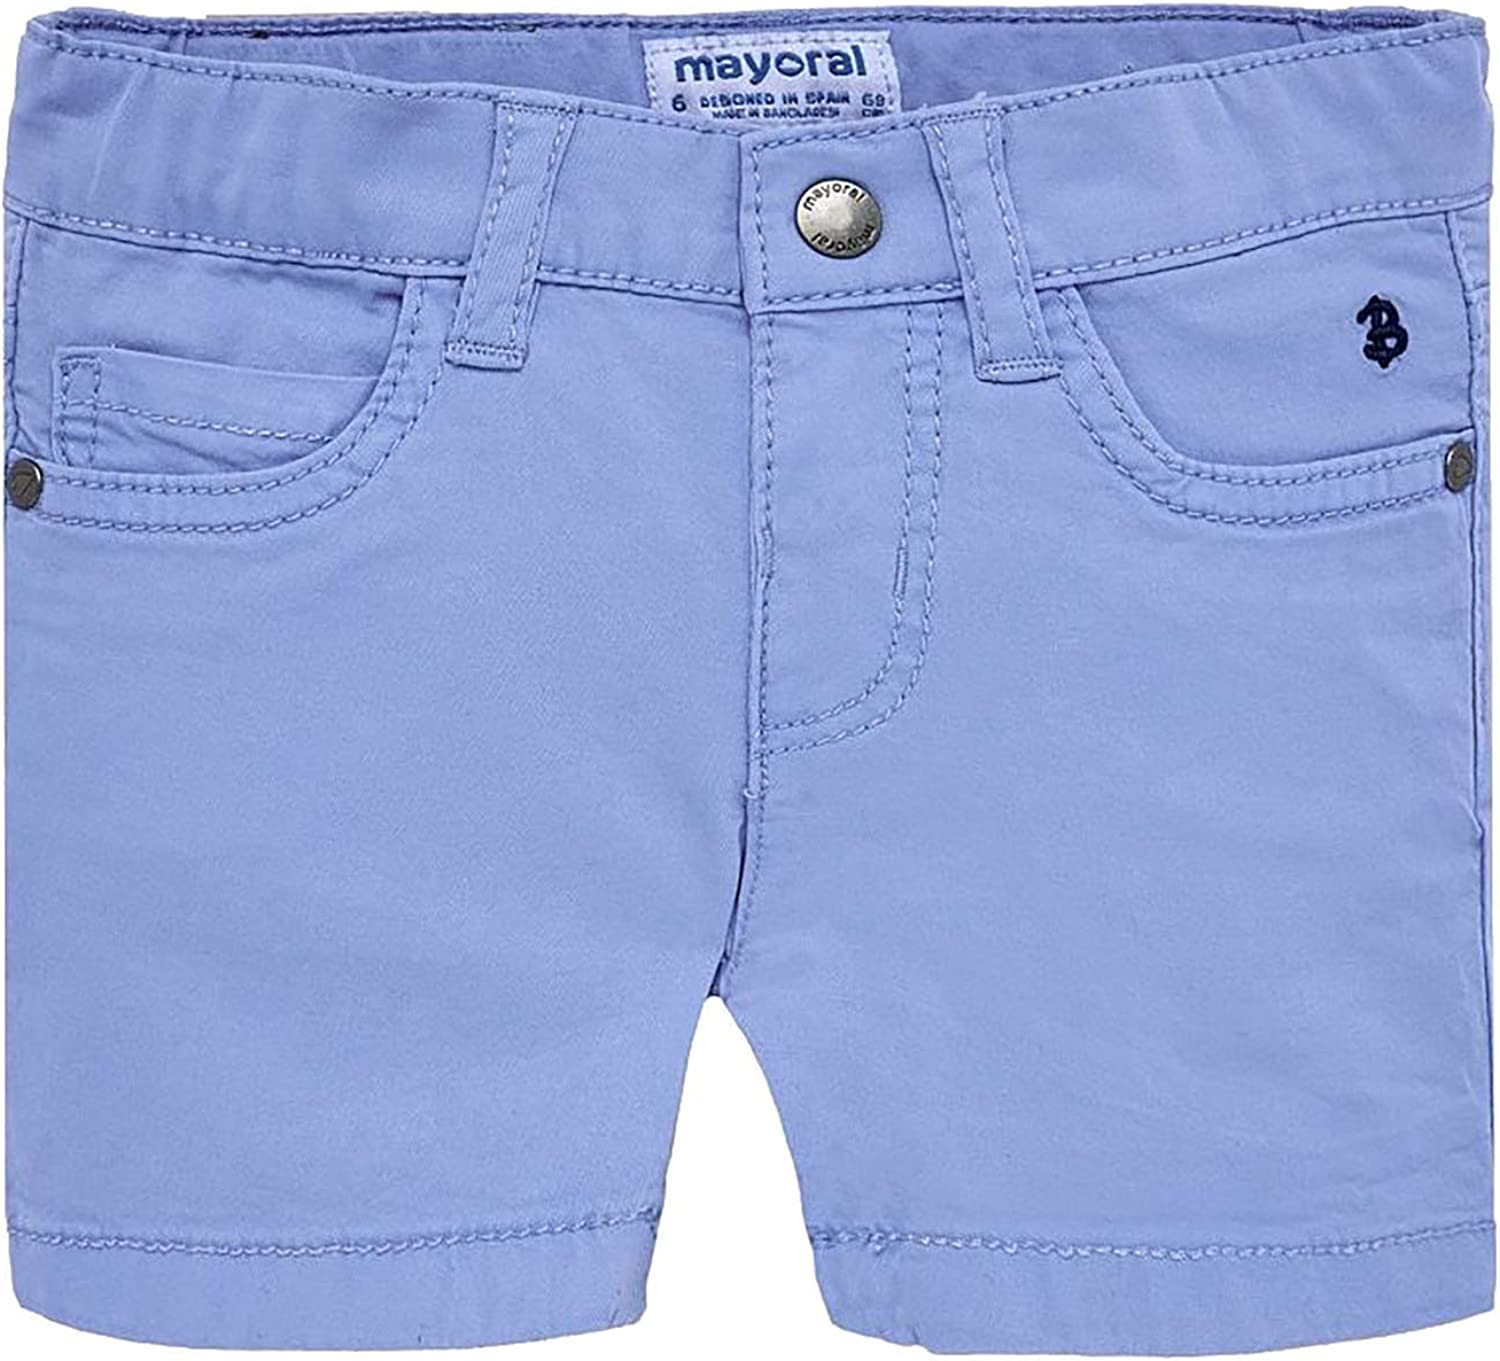 Mayoral Basic 5 Pockets Twill Shorts for Baby-Boys 0206 Lightblue